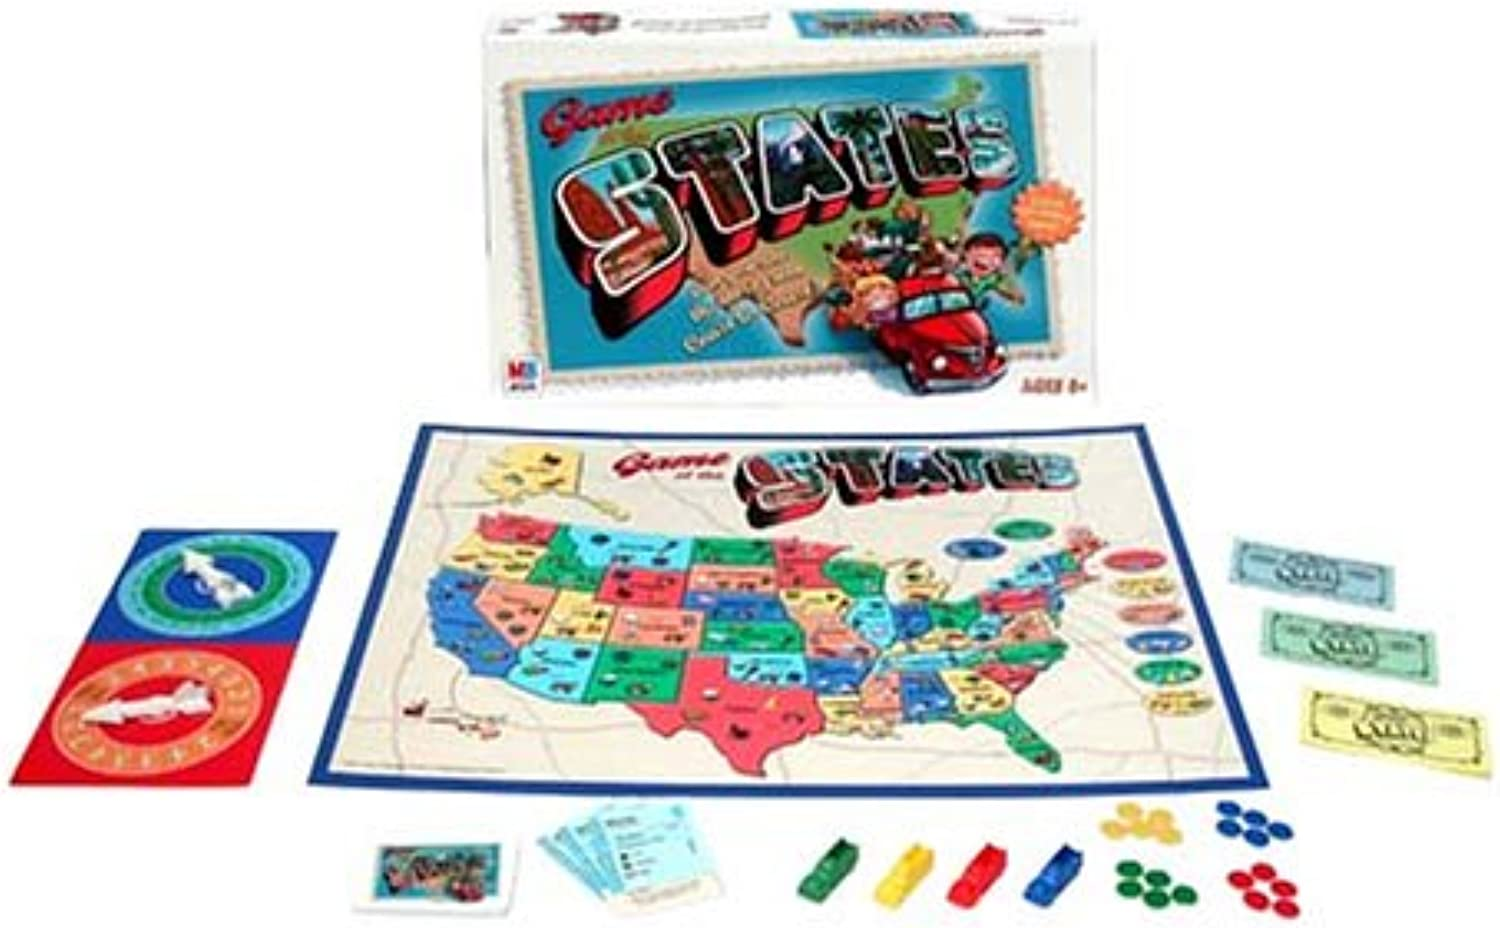 Game Of The States by Hasbro